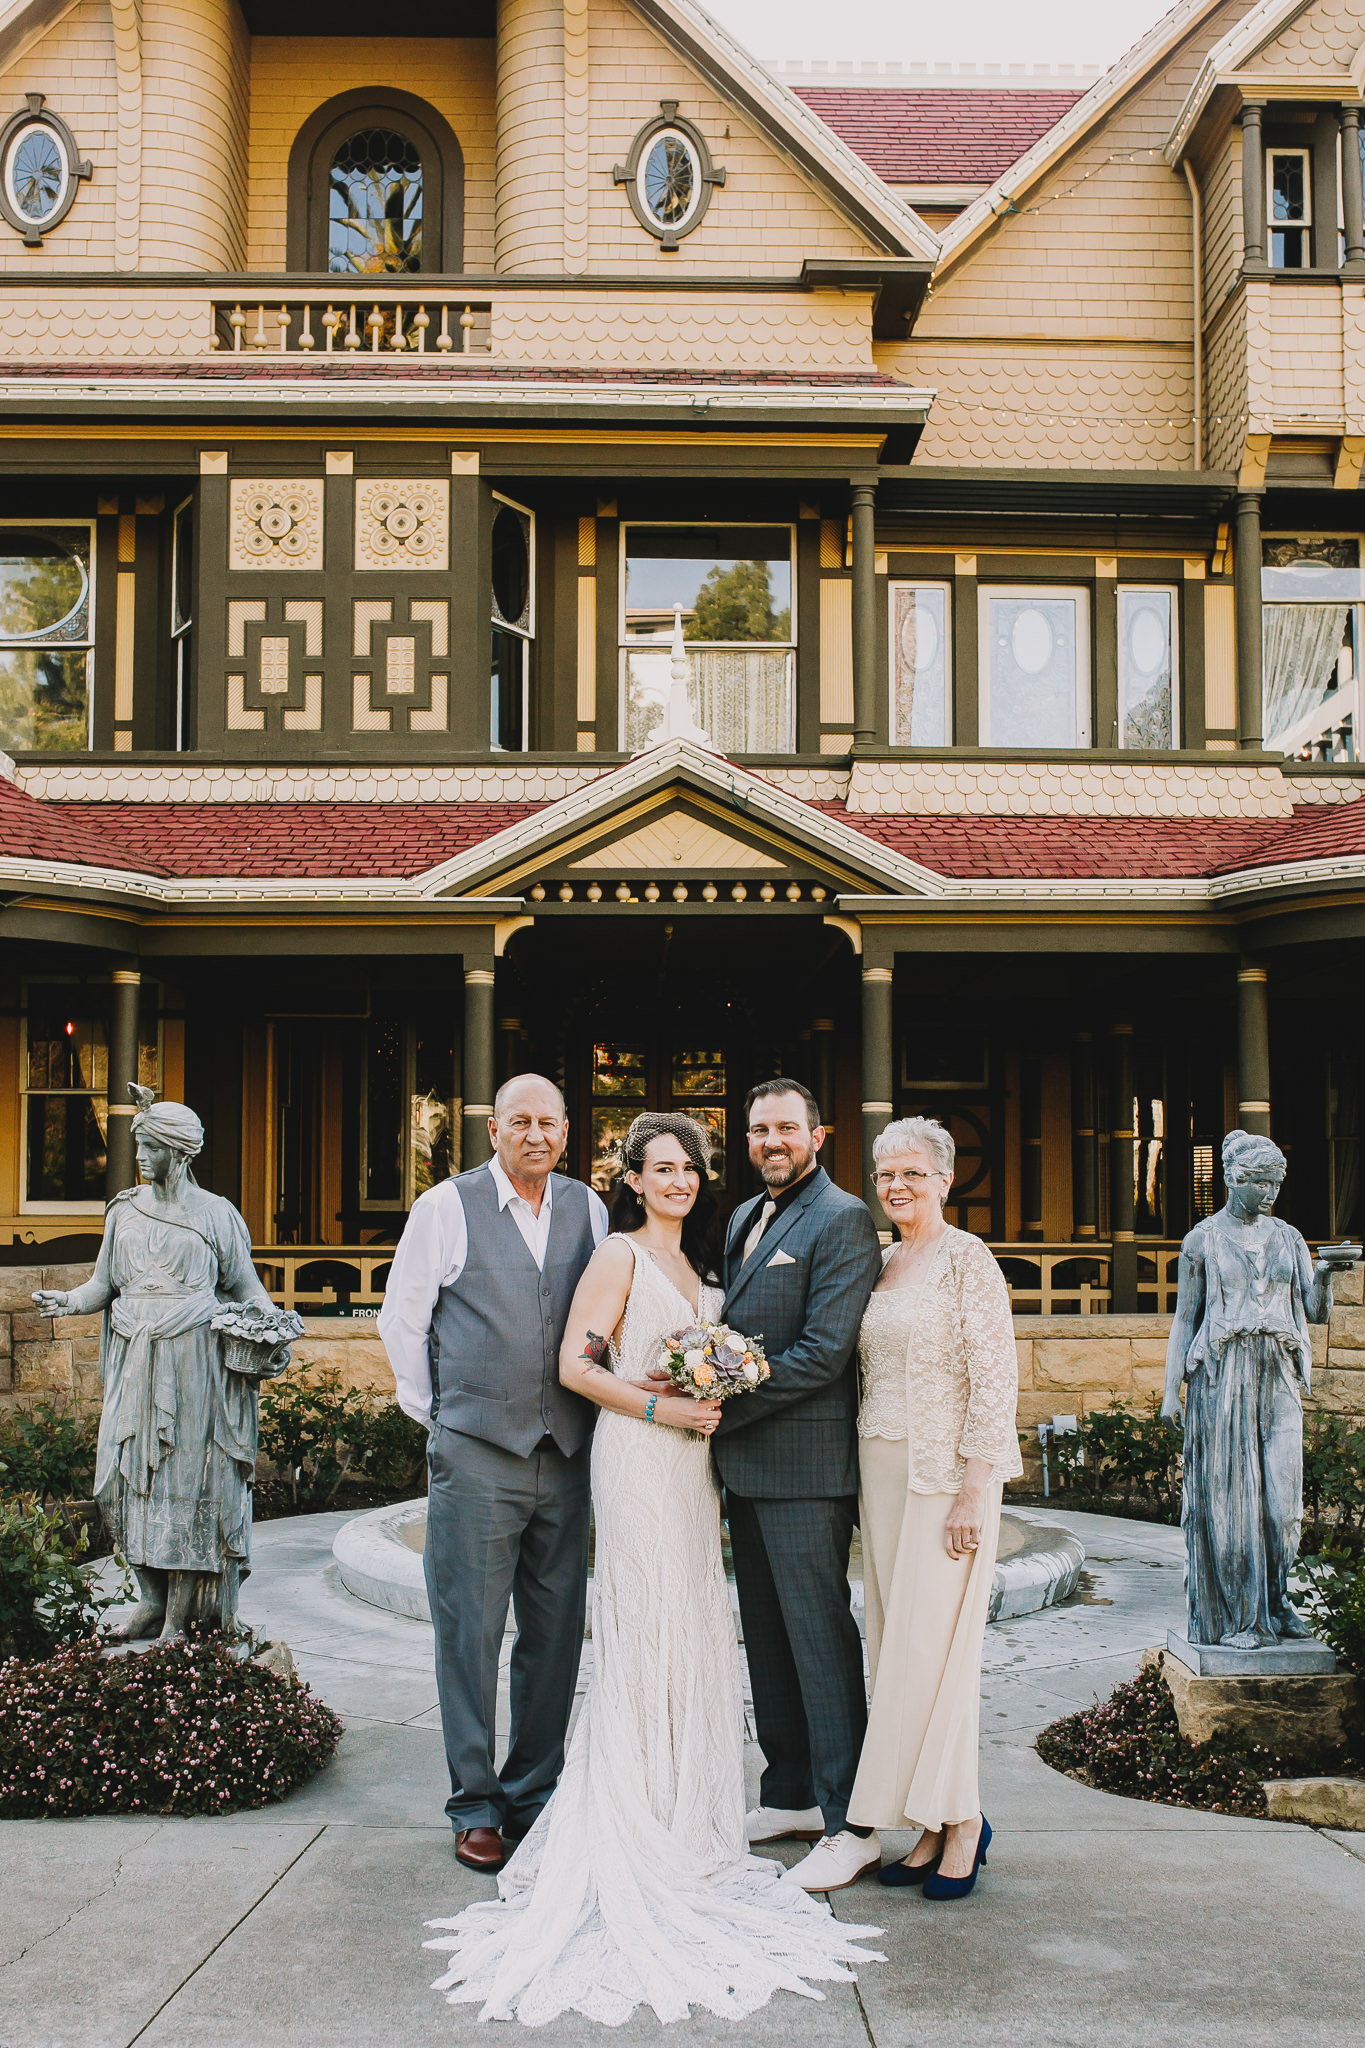 Archer Inspired Photography Sara and Aaron Winchester Mystery House NorCal San Jose California Wedding Photographer-208.jpg